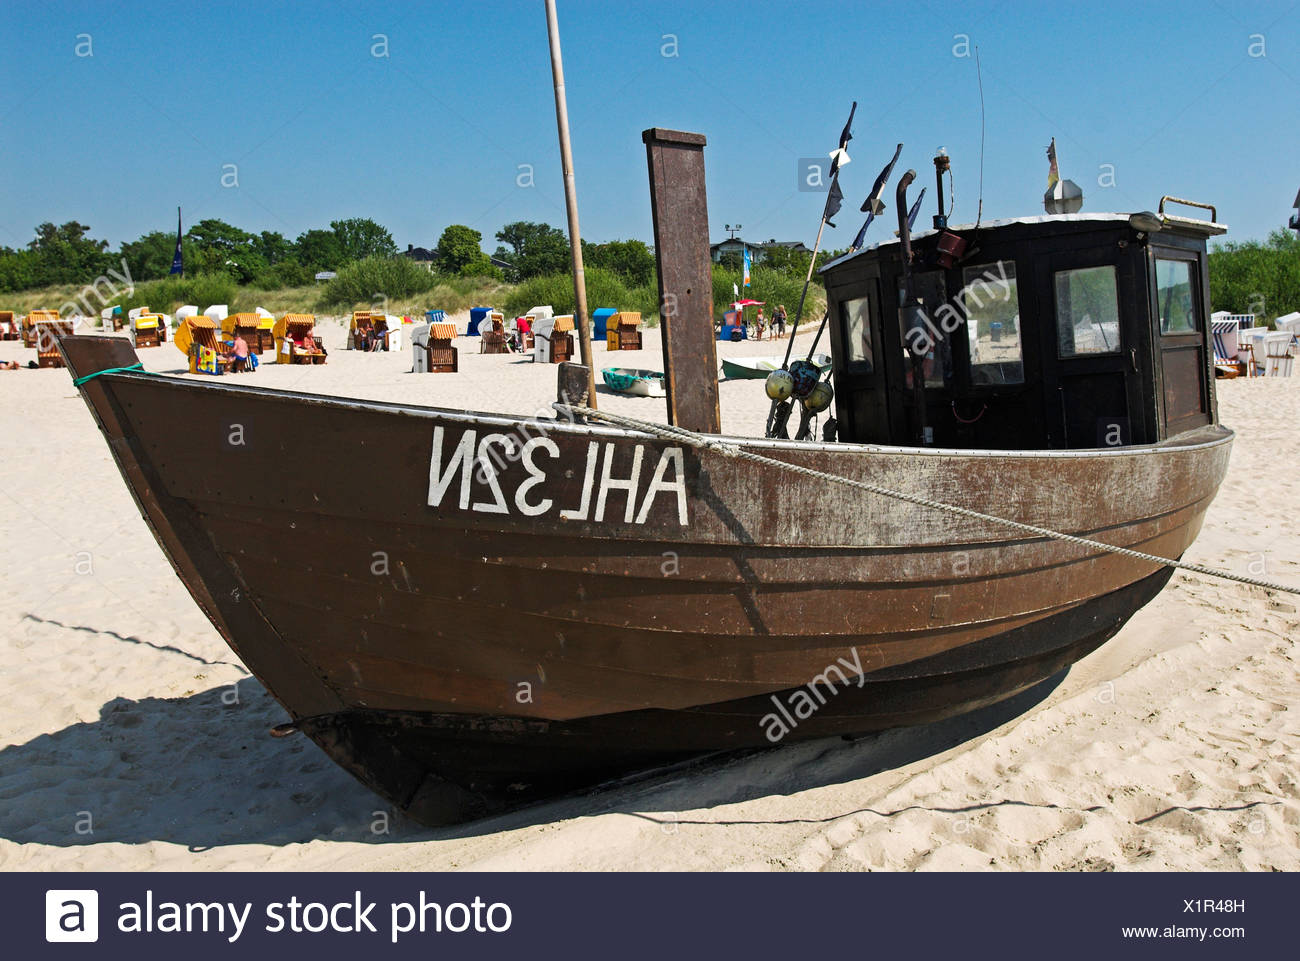 Fisher boat at the beach of Ahlbeck, Usedom island, Mecklenburg Western Pomerania, Germany, Europe - Stock Image